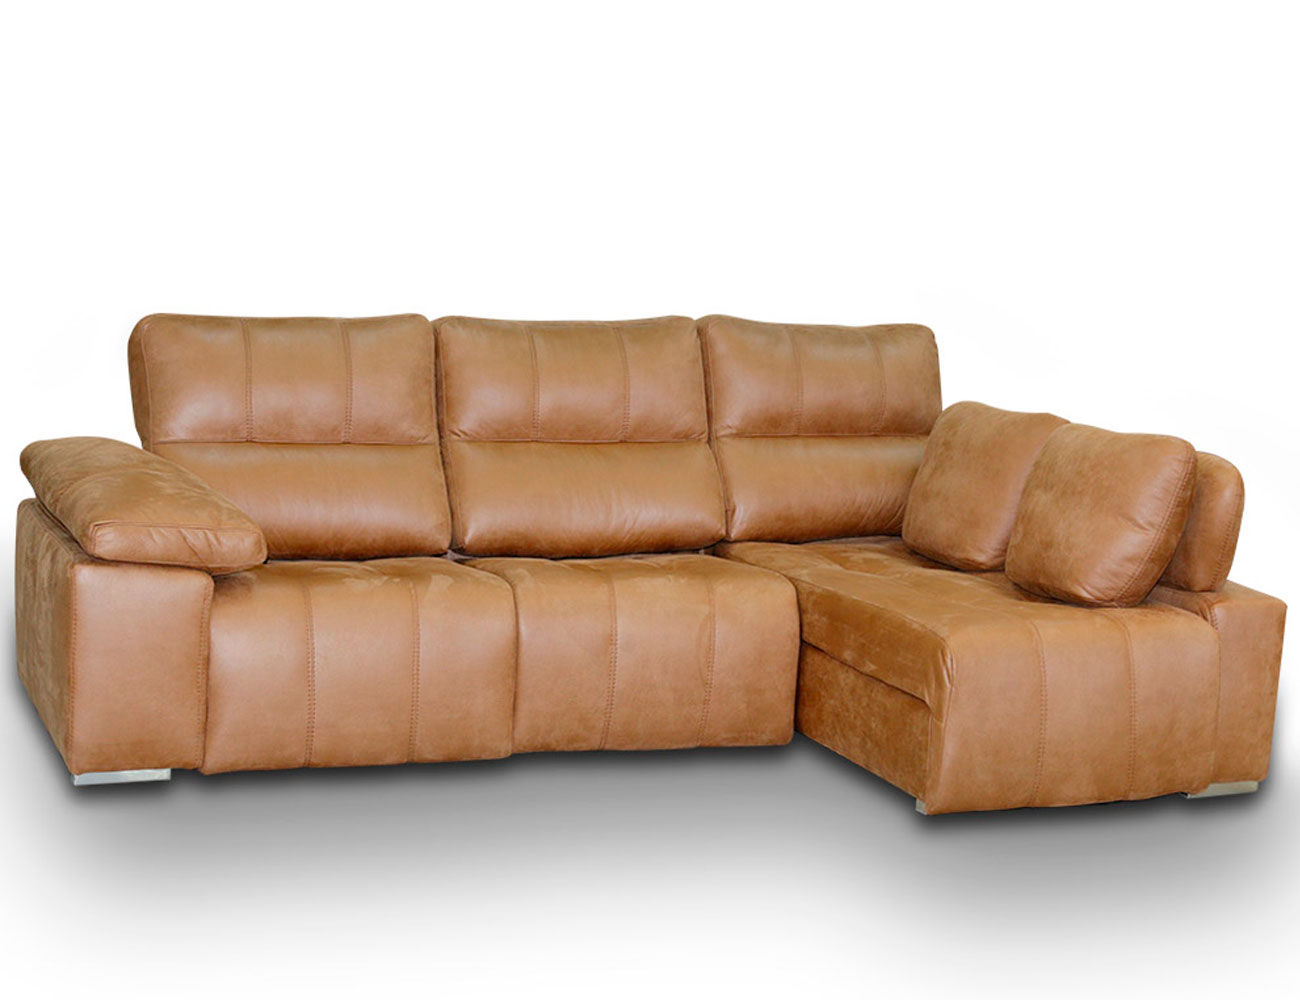 Sofa chaiselongue relax 2 motores anti manchas29